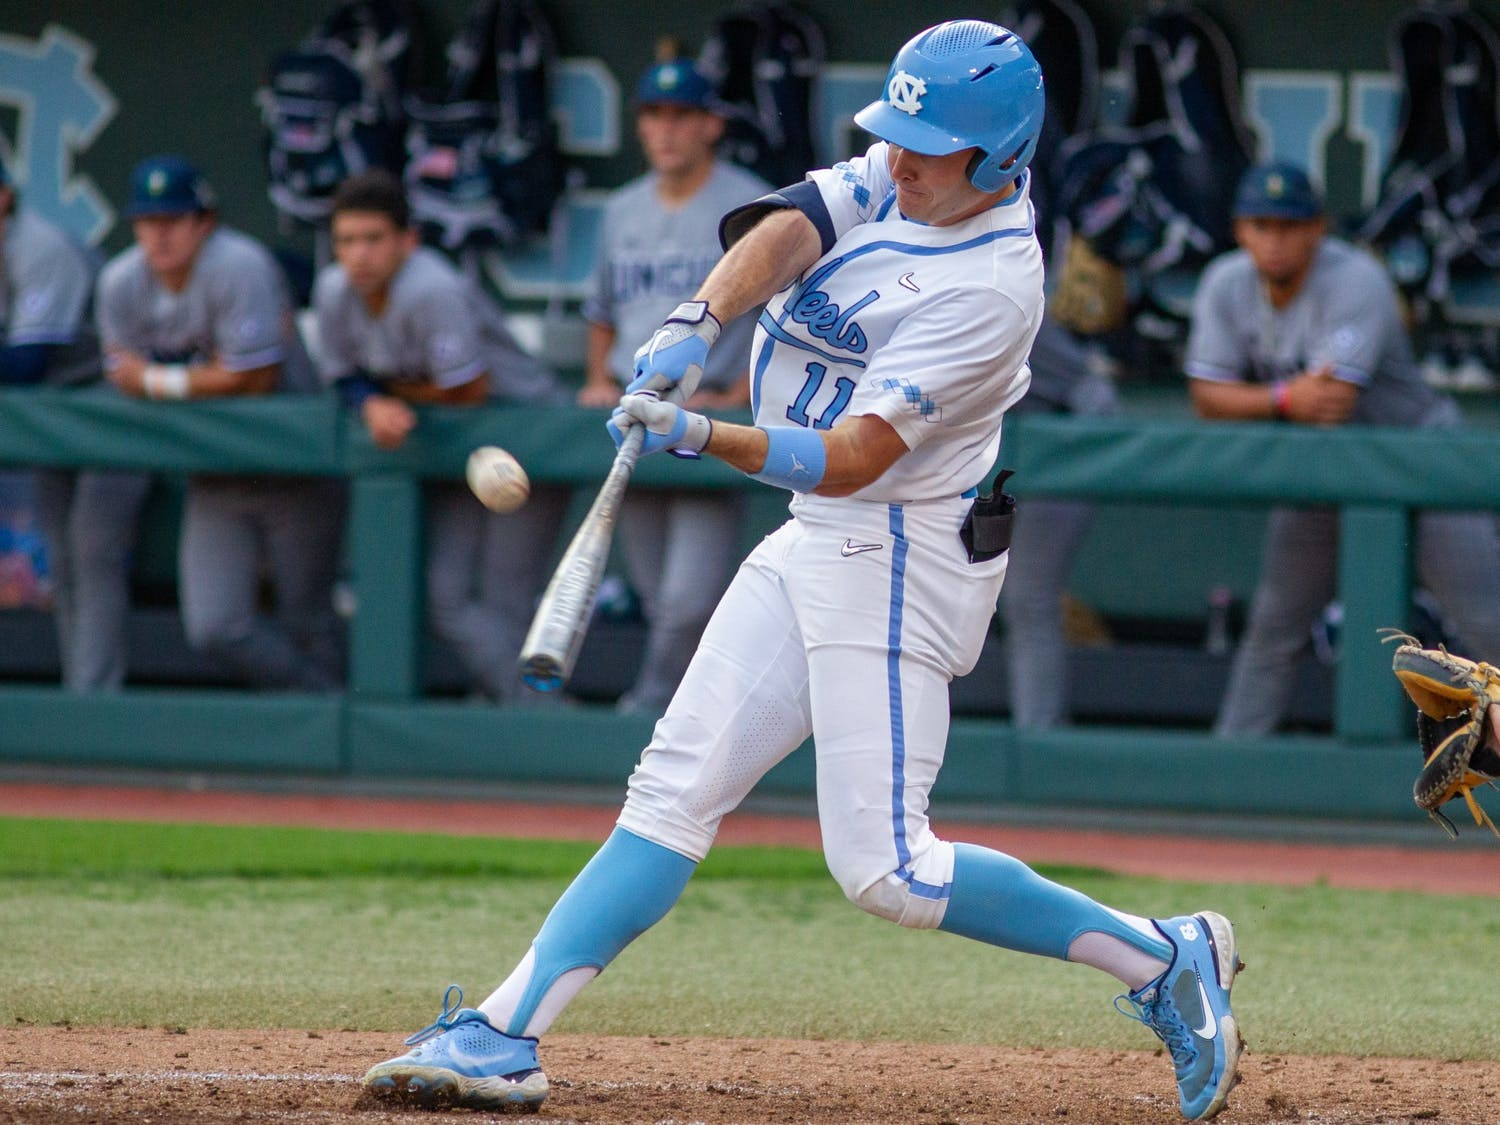 UNC sophomore outfielder Caleb Roberts (11) hits the ball at the game against UNCW on Tuesday May 18, 2021 at Boshamer stadium. The Tar Heels won 14-9.